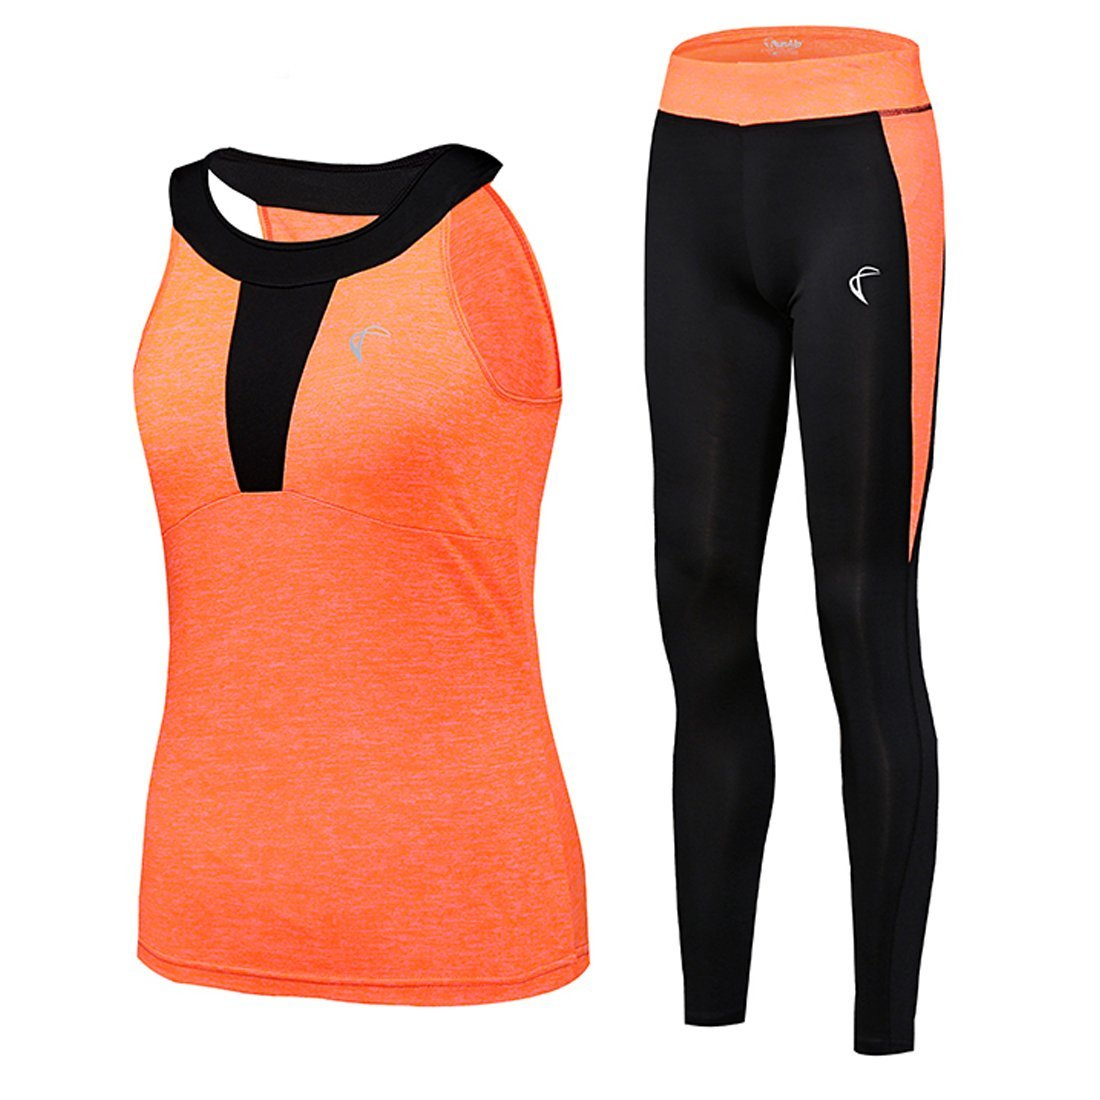 Shelcup Tracksuit For Women Yoga Workout Fitness Running Athletic Sports Gym Tank Top Pant 2 Piece Set, Orange Top and Black Pant, Medium